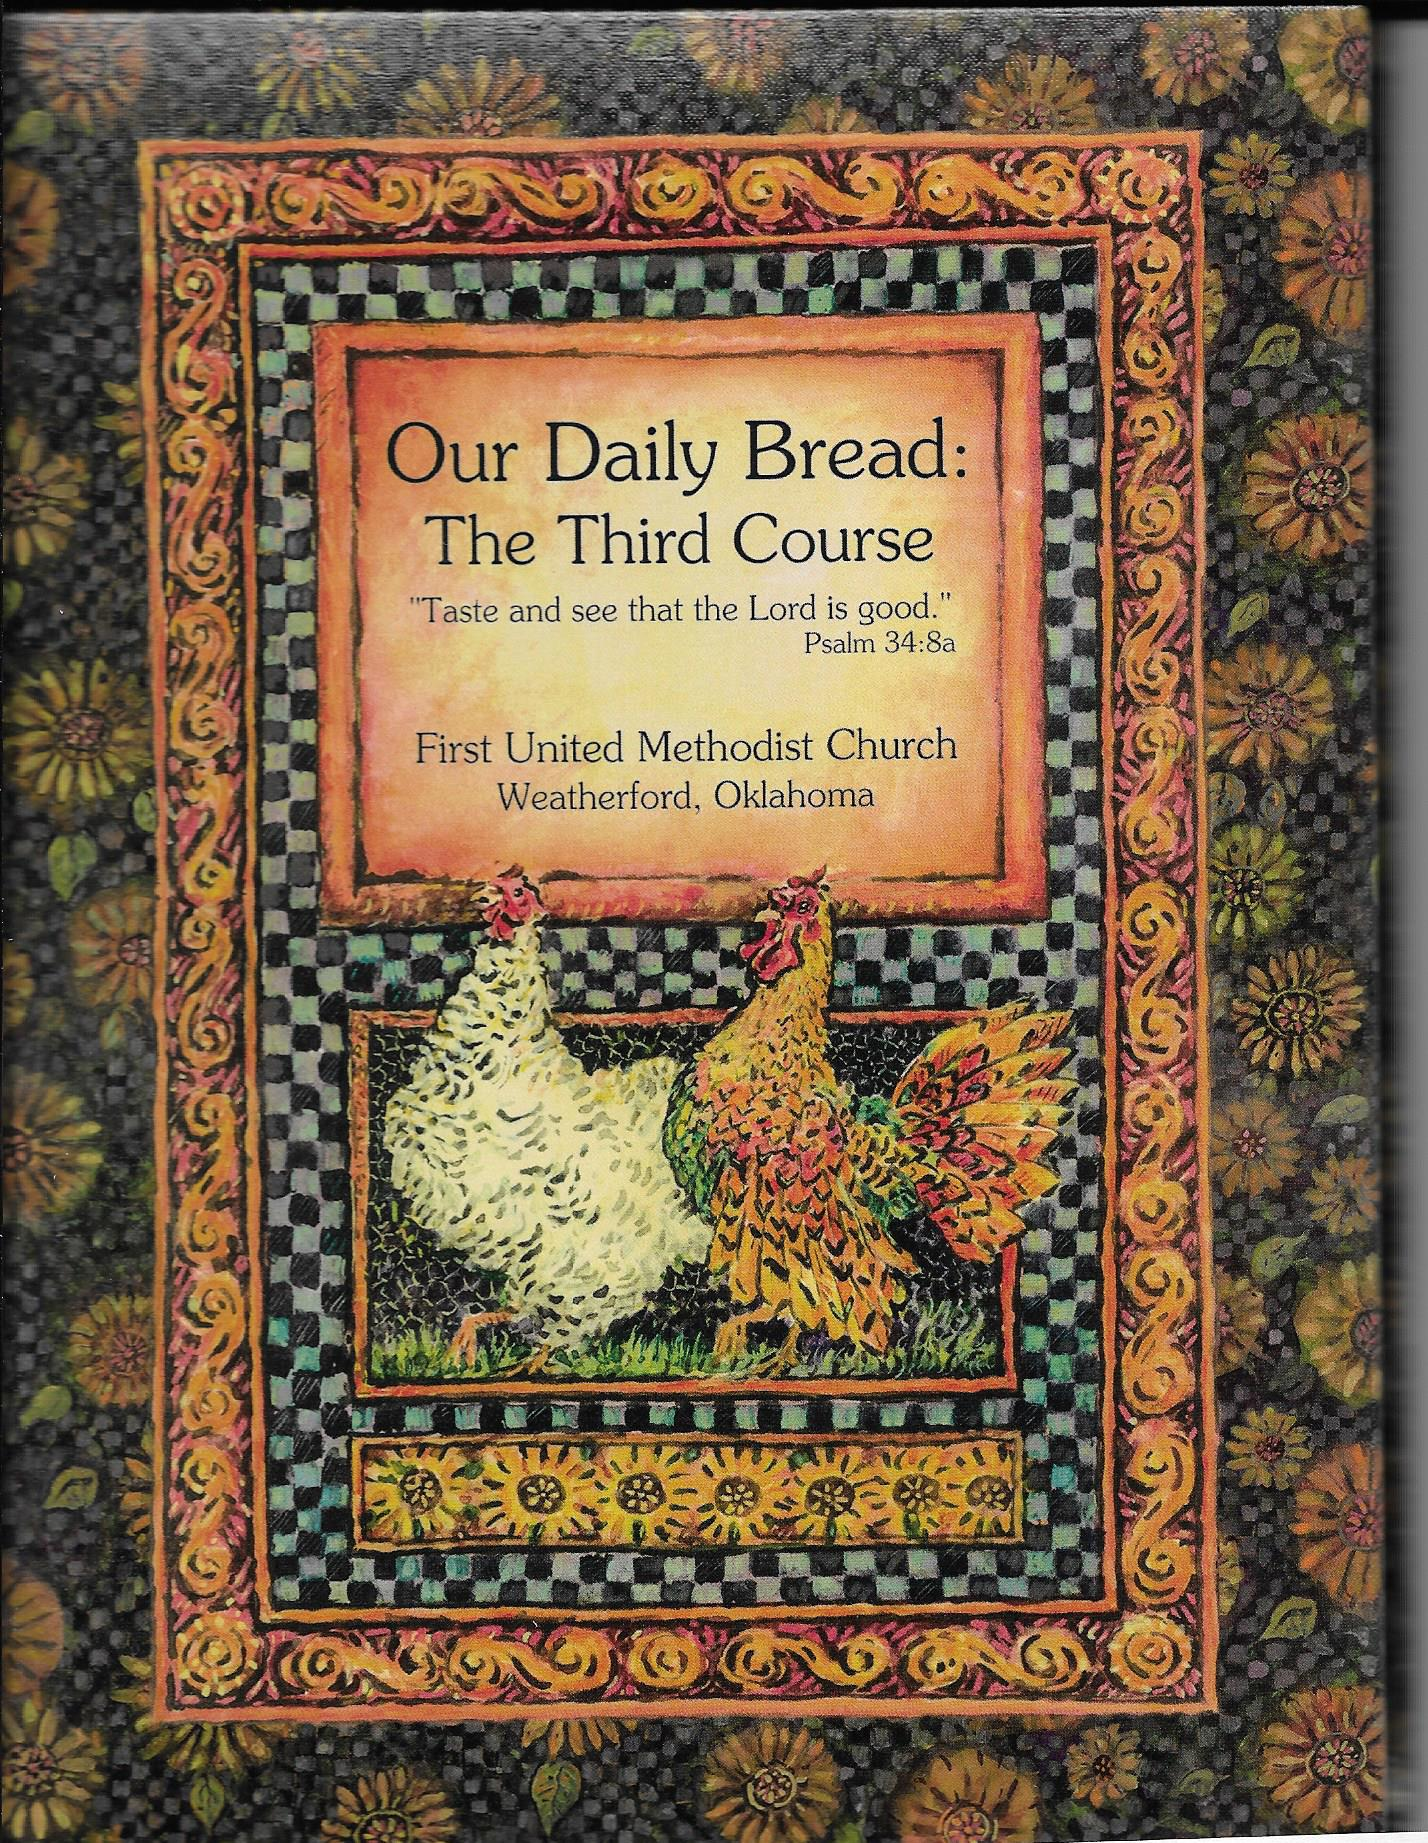 umw-cookbook front page image